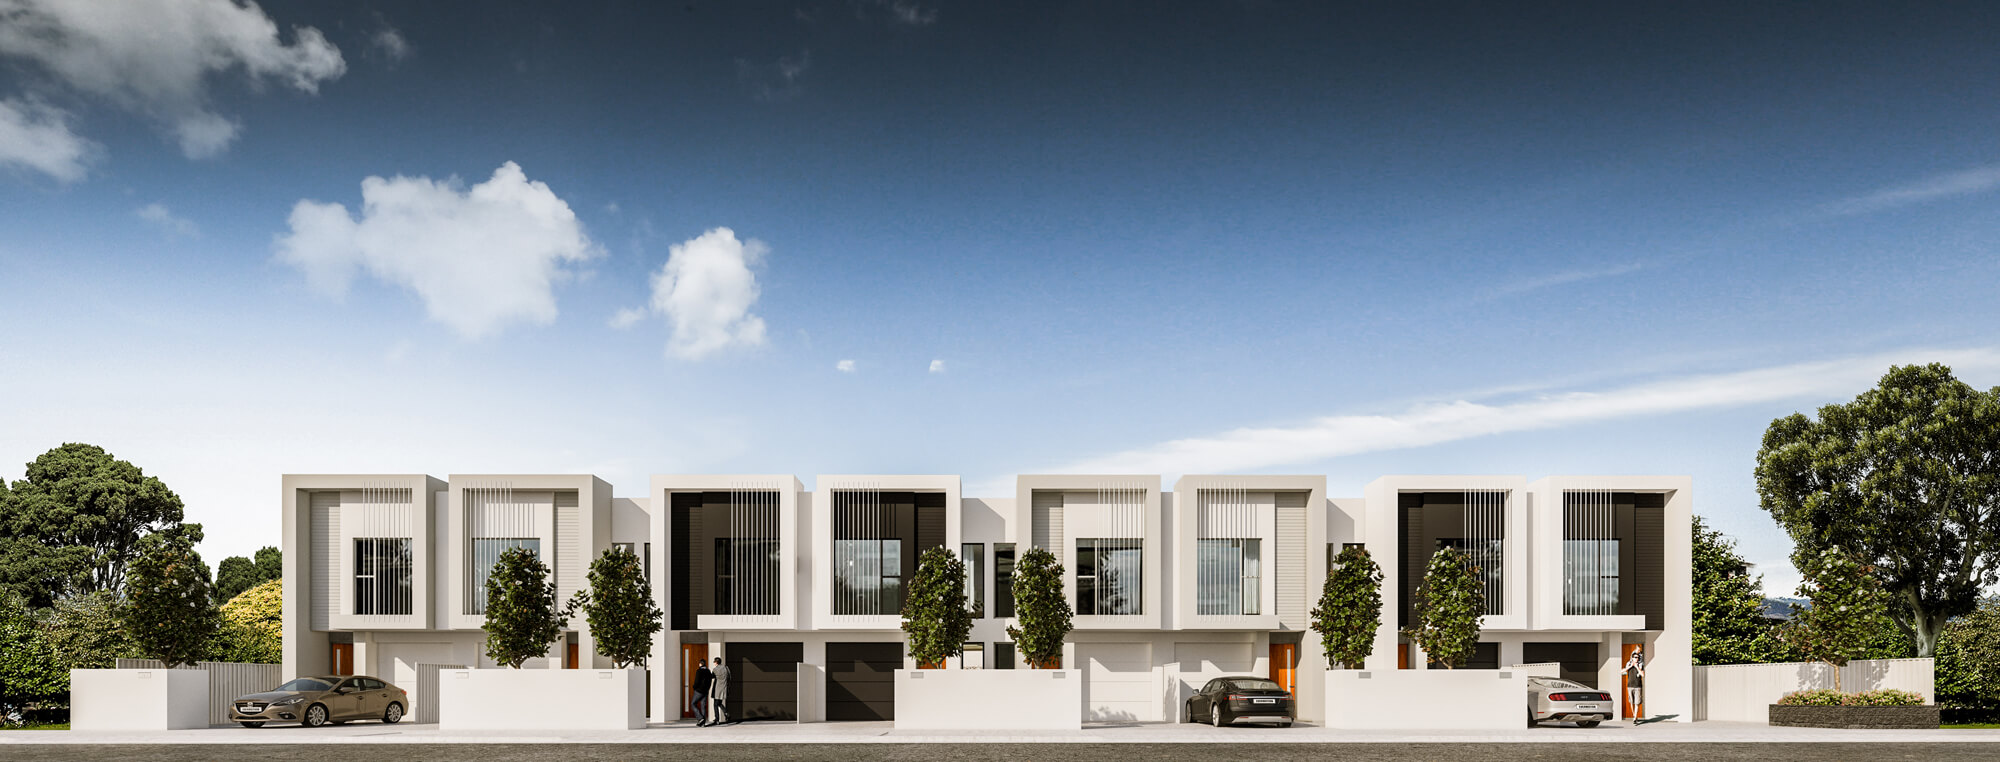 Normus Homes artists impression